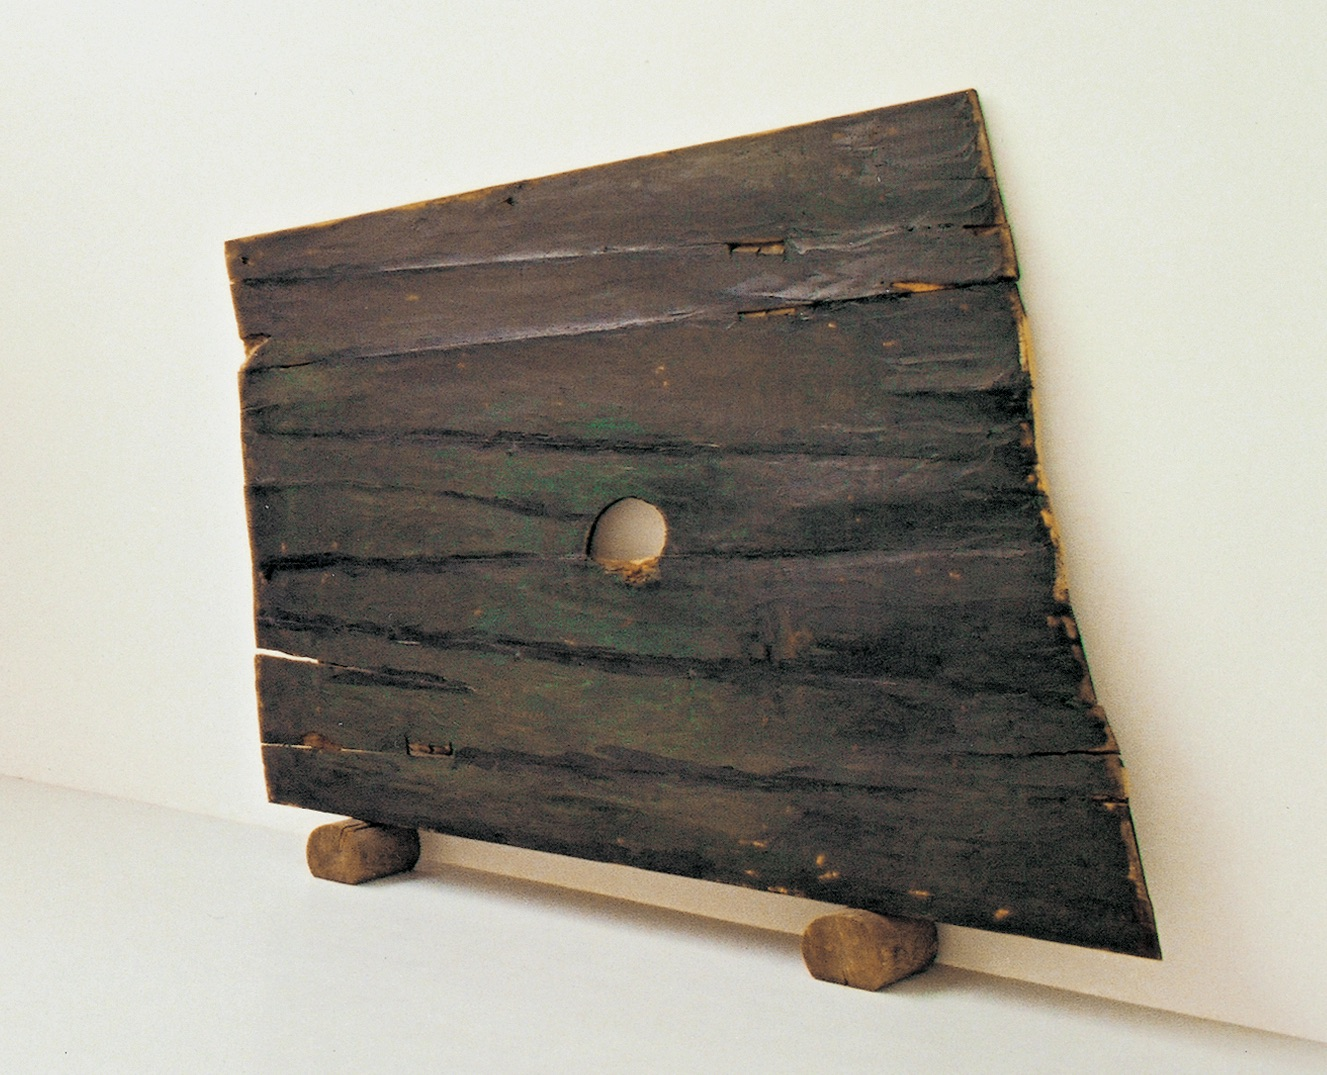 Die reisende Birne (Die Birnenreise) , 1991, Oil on wood, 98.42h x 98.42w in (250h x 250w cm), Morat-Institute, Freiburg in Breisgau